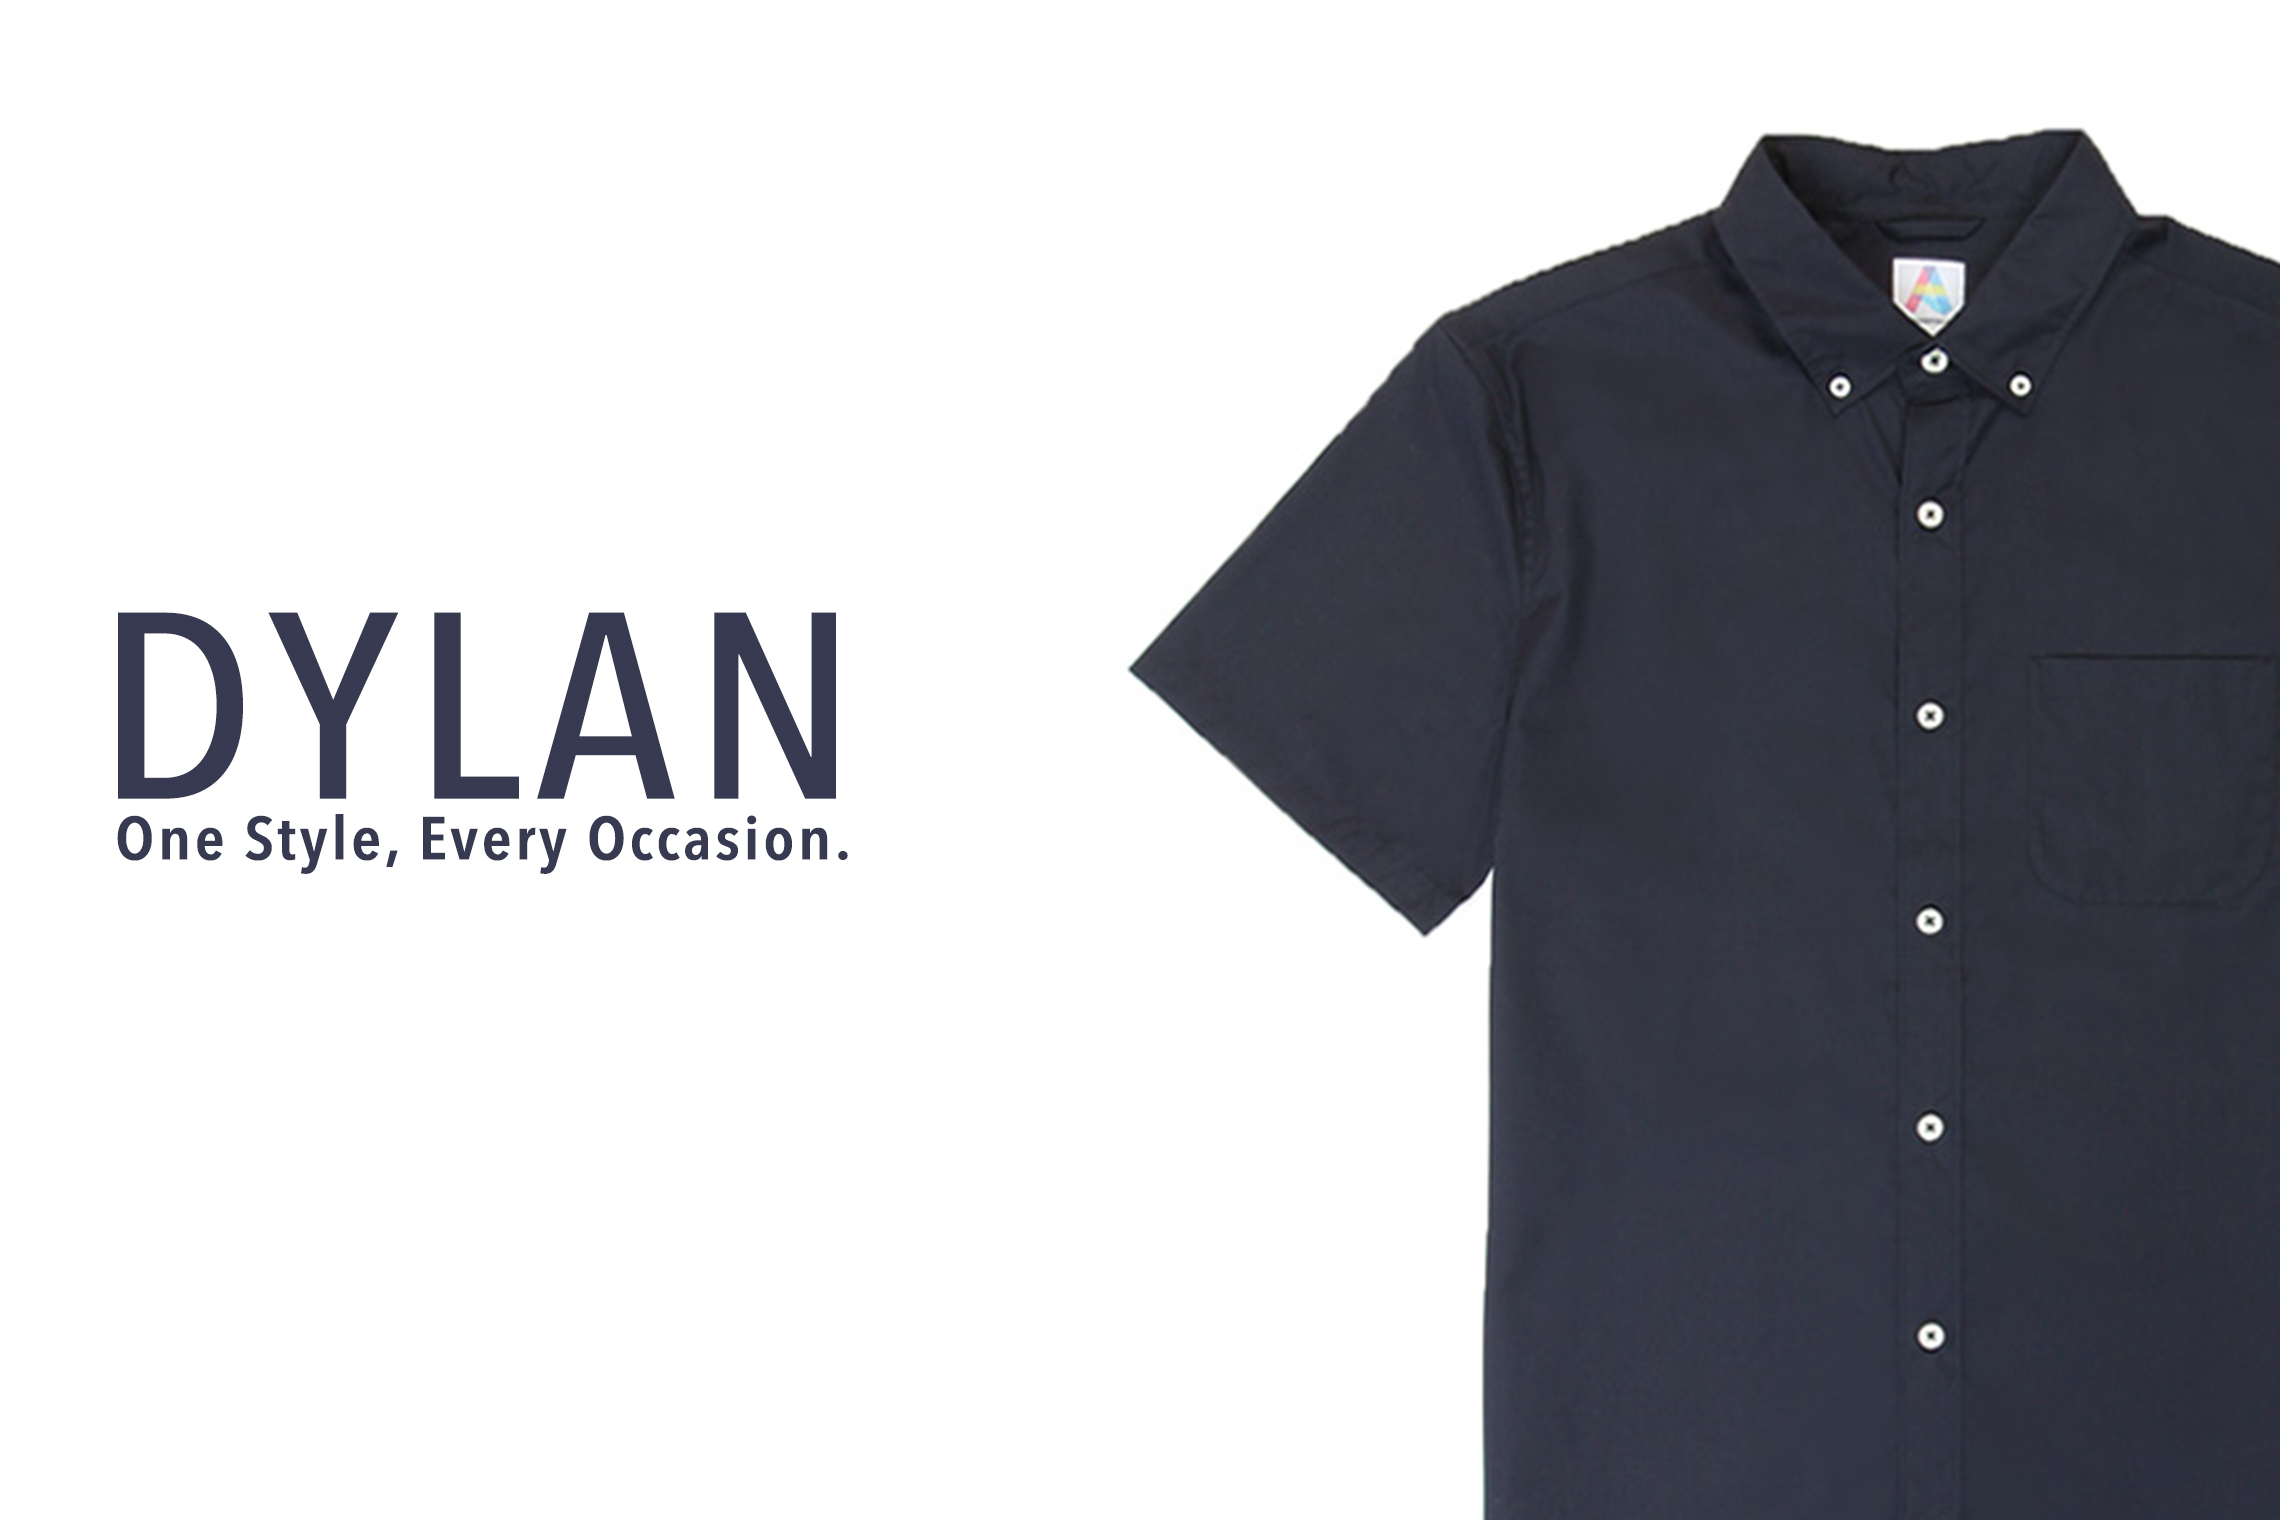 Dylan: One Style, Every Occasion